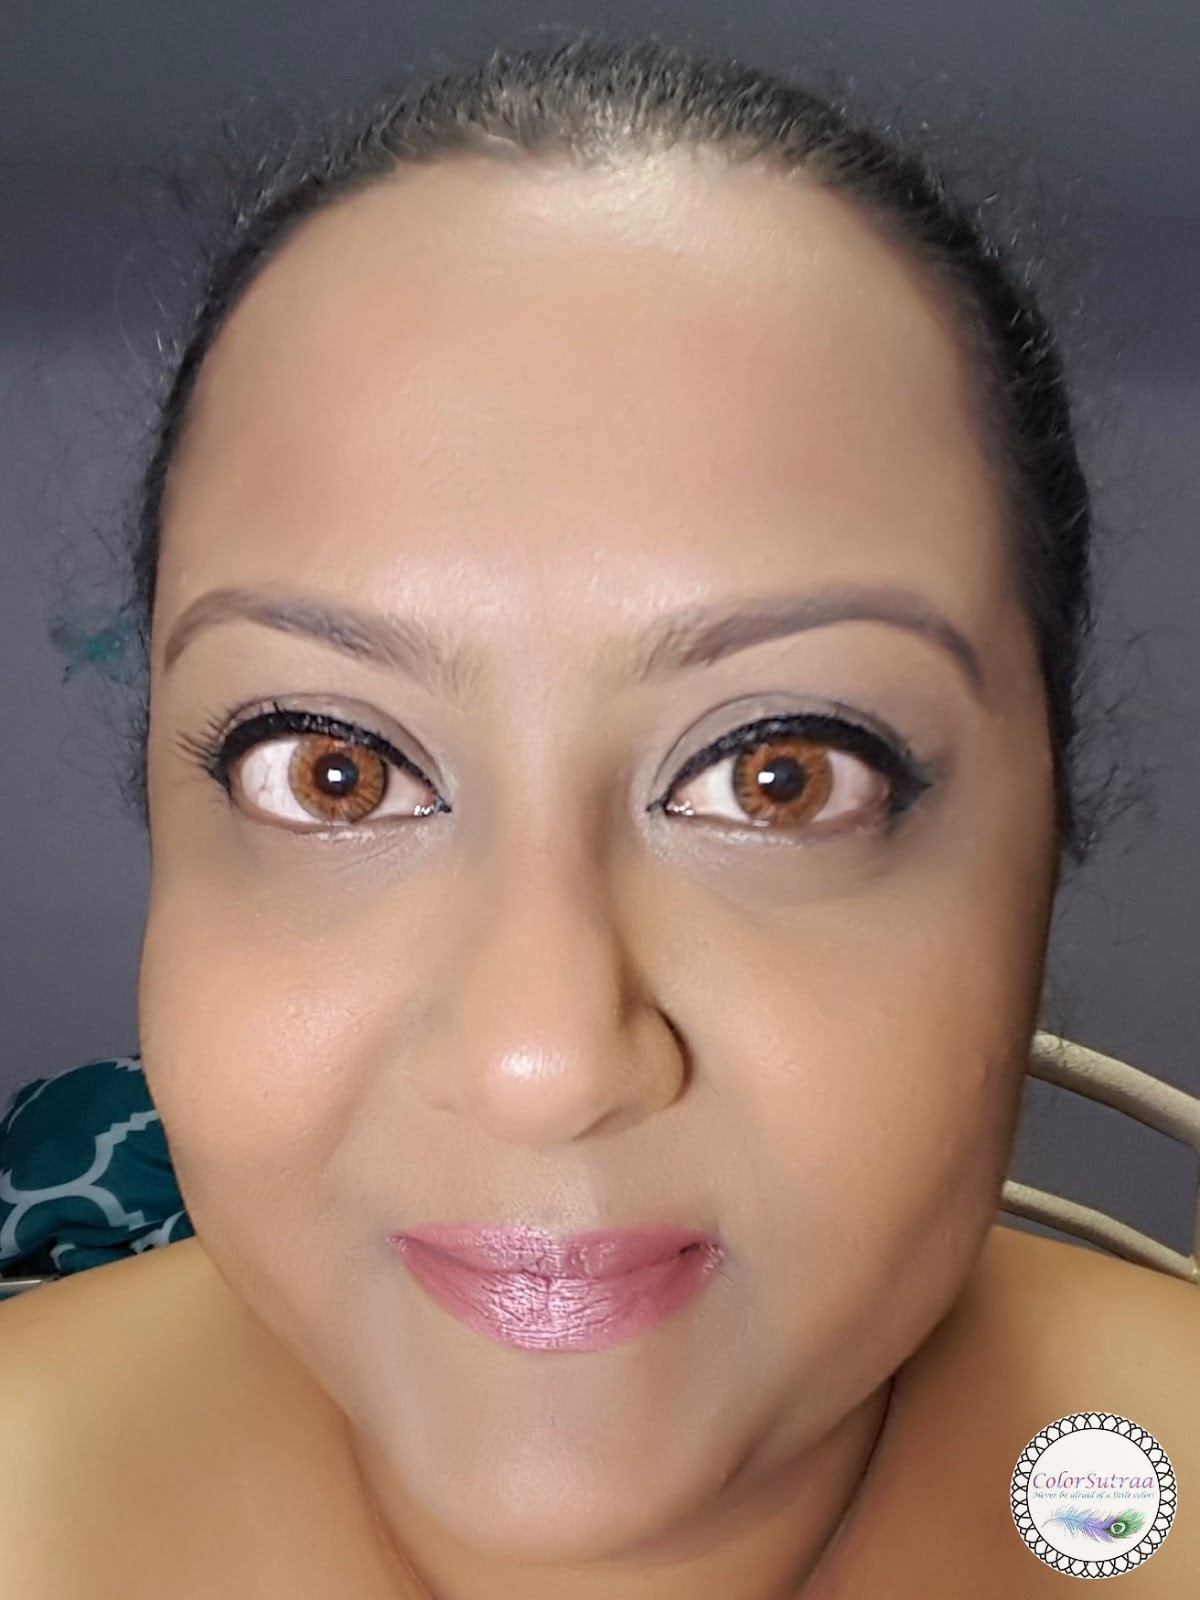 August 2018 Colorsutraa Lock It Cushion Lip Pen 10 Nudi Beige Gently Winged Liner Just On The Upper Lashline And A Pretty Pink Toned Lipstick Like Nude Shimmer Shown Below What Do You Think